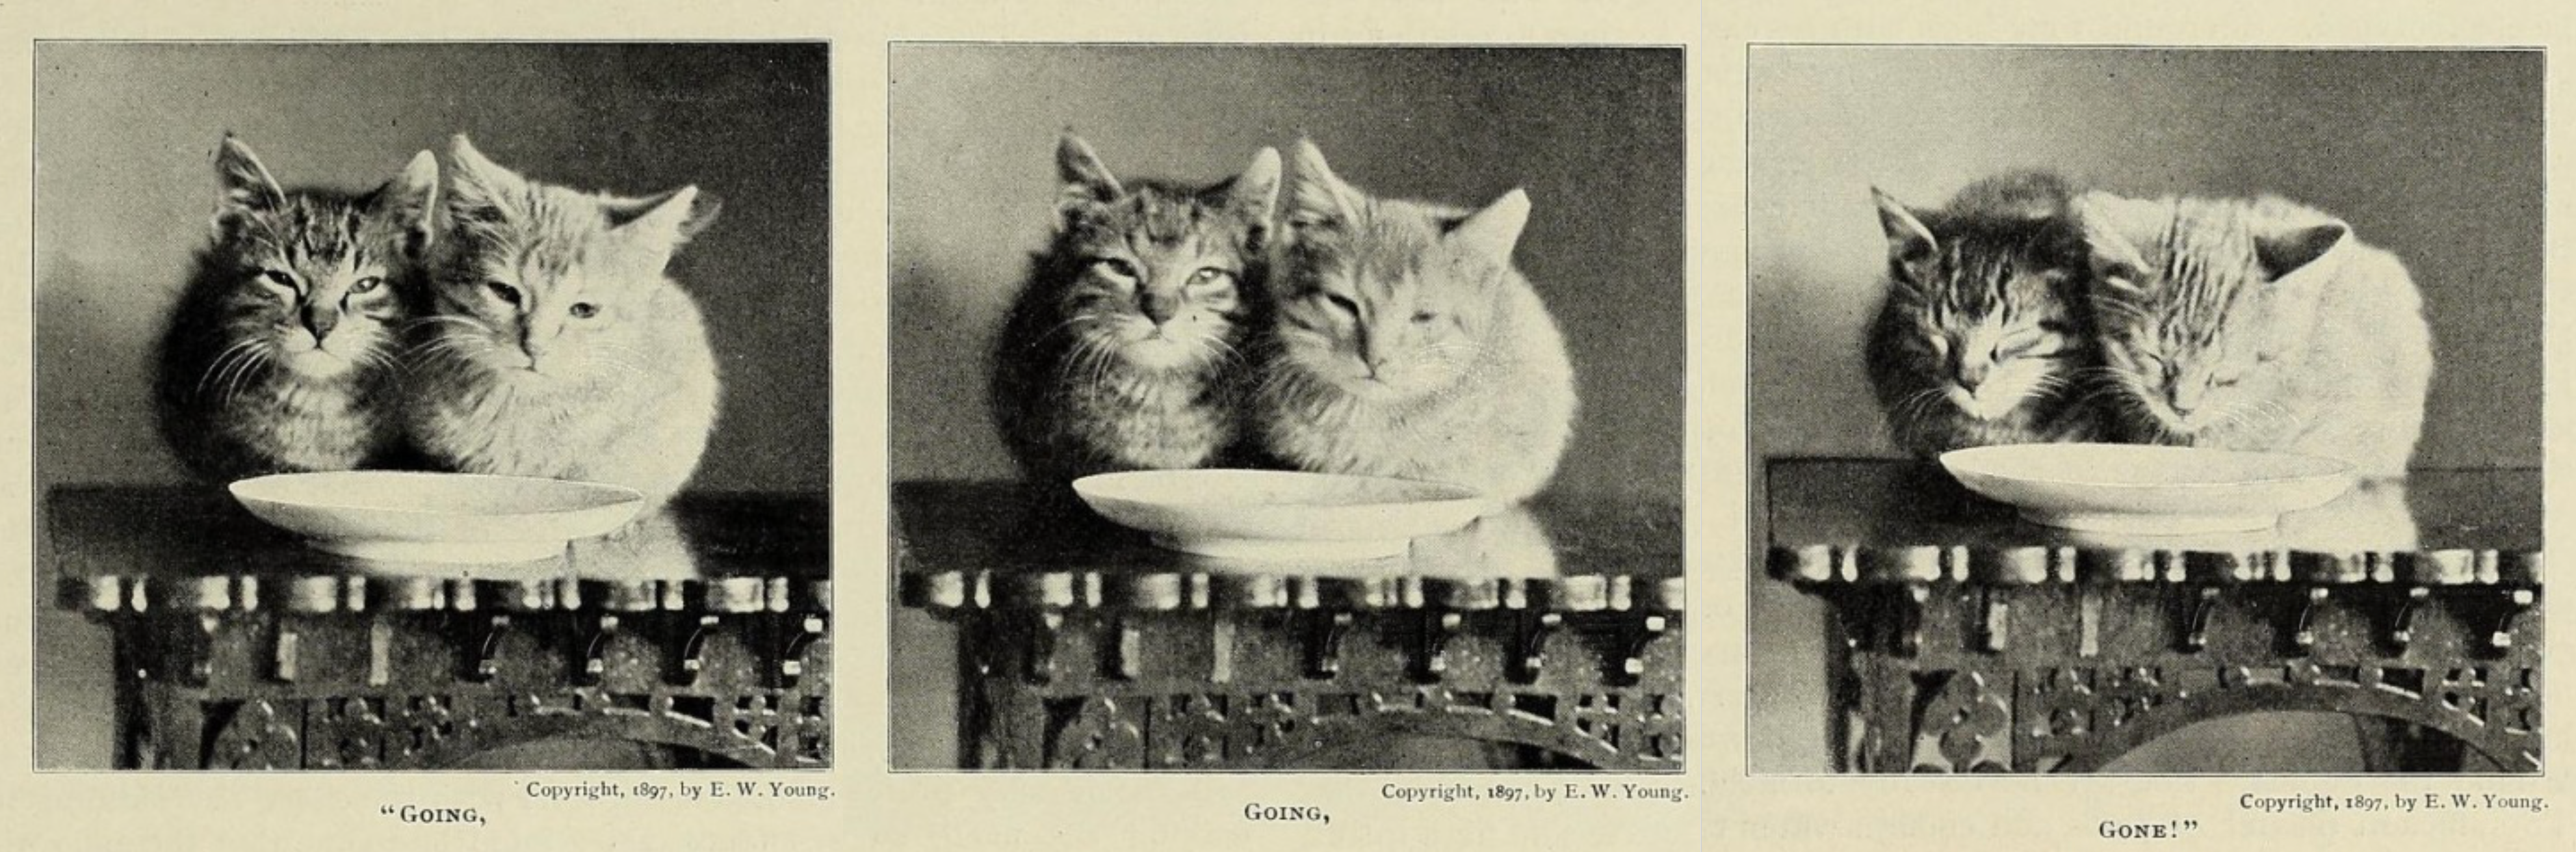 3 pictures of sleeping cats saying going going gone